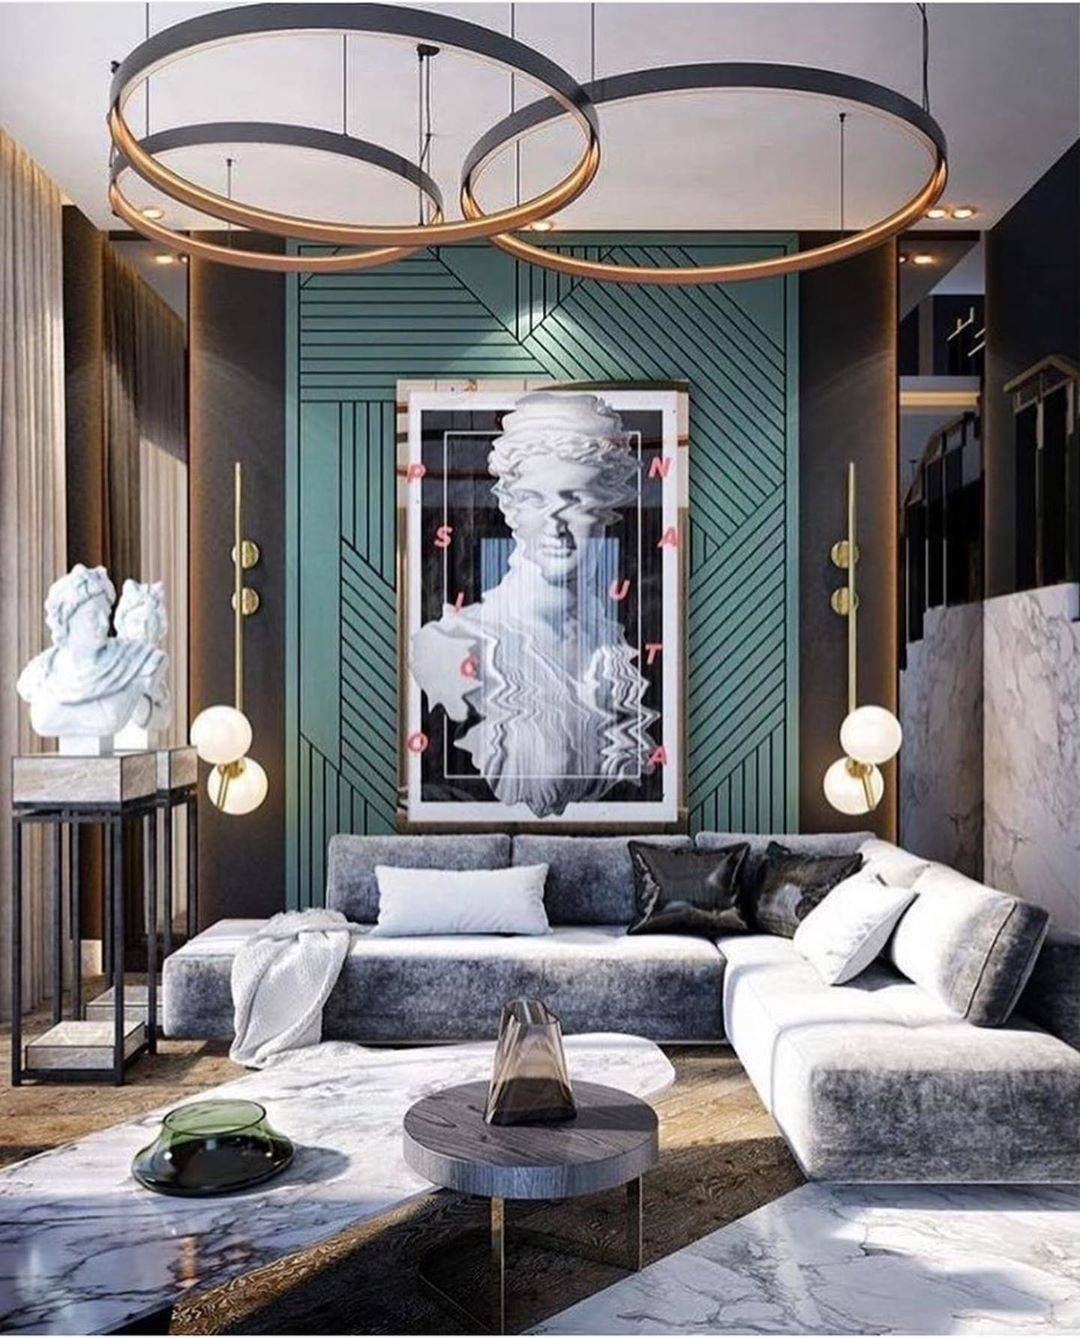 LUXURY AND ECCENTRIC LIVING ROOM WITH VERY STYLE in 2020 ...